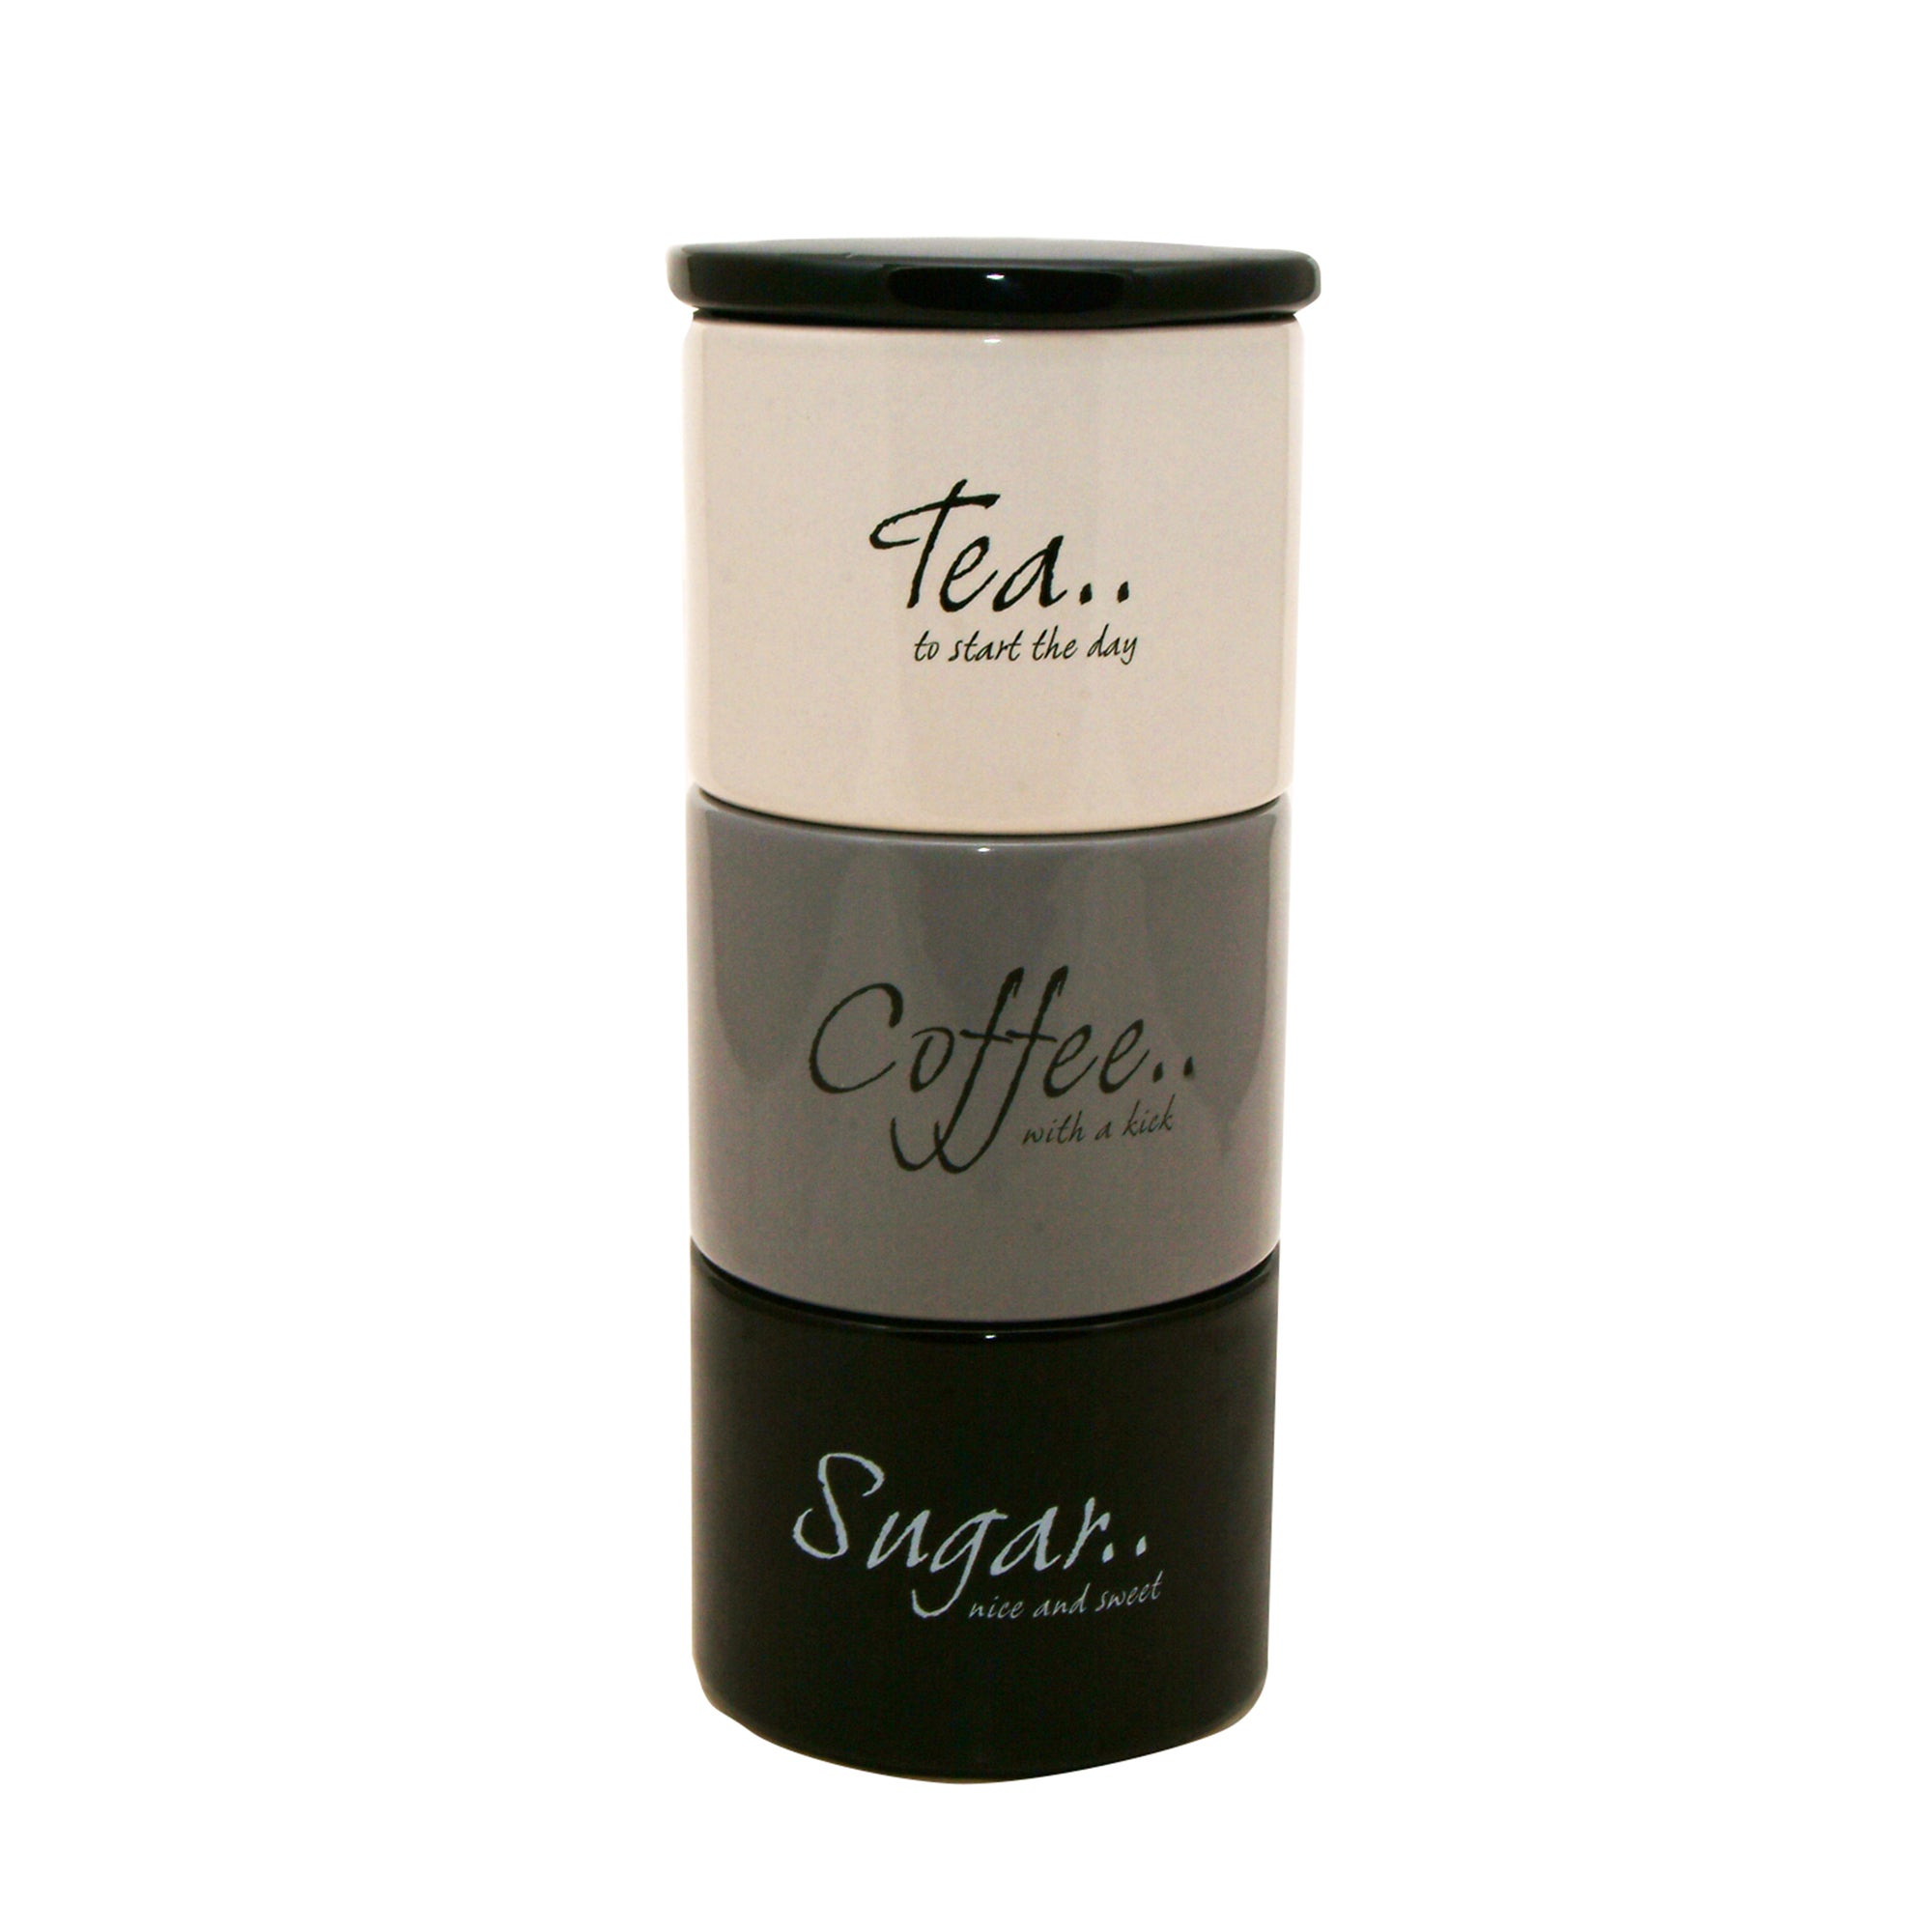 Monochrome Stack of Tea, Coffee and Sugar Storage Jars